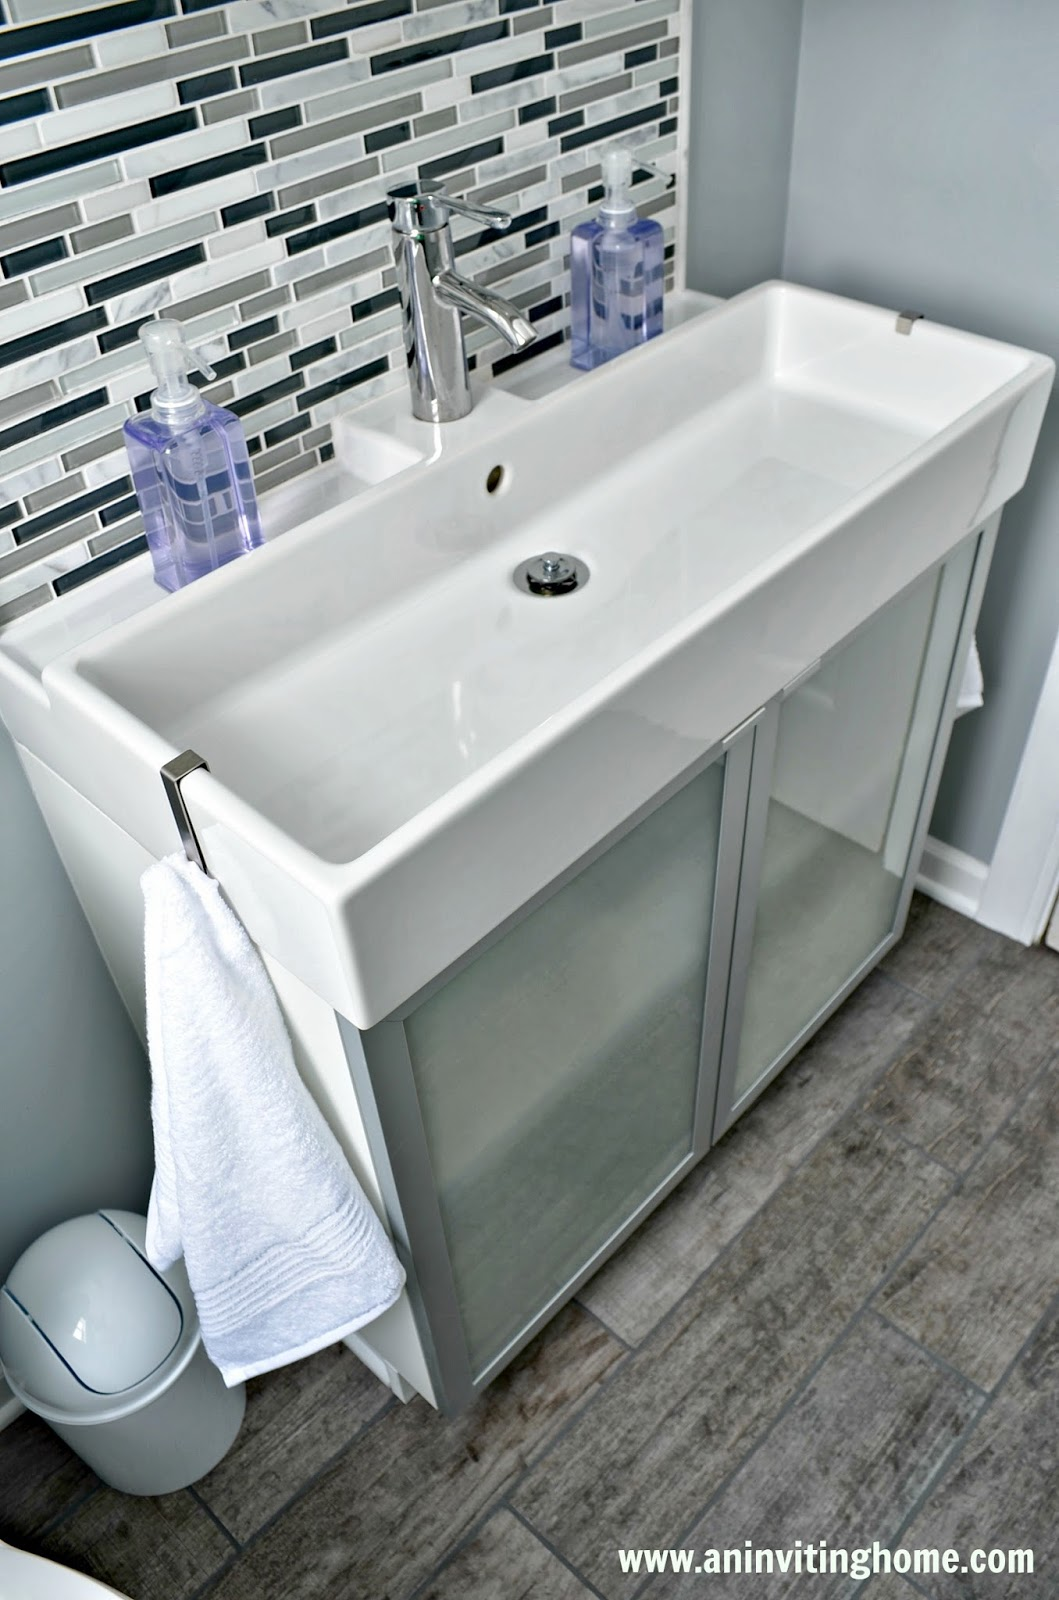 ikea sink for bathroom for